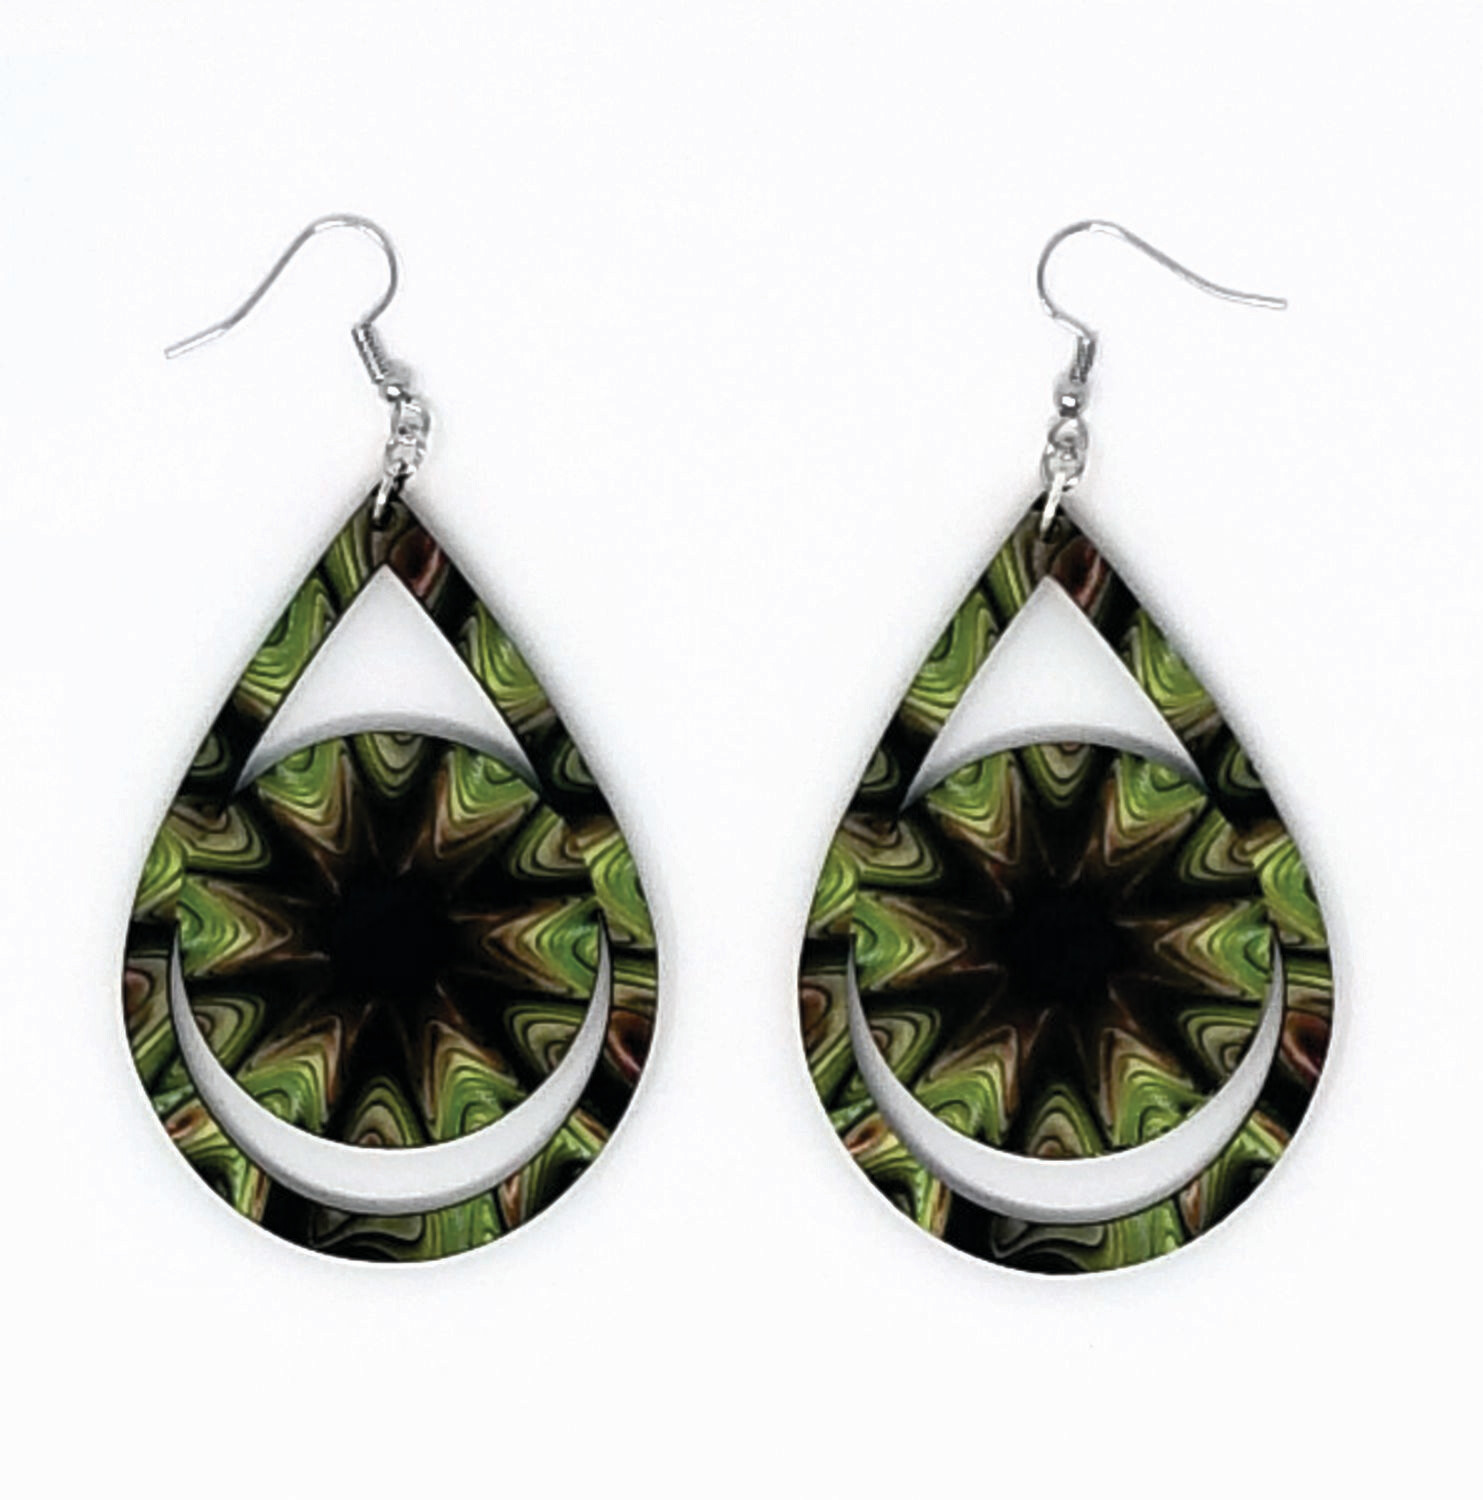 Large Teardrop Earring with Circle Center